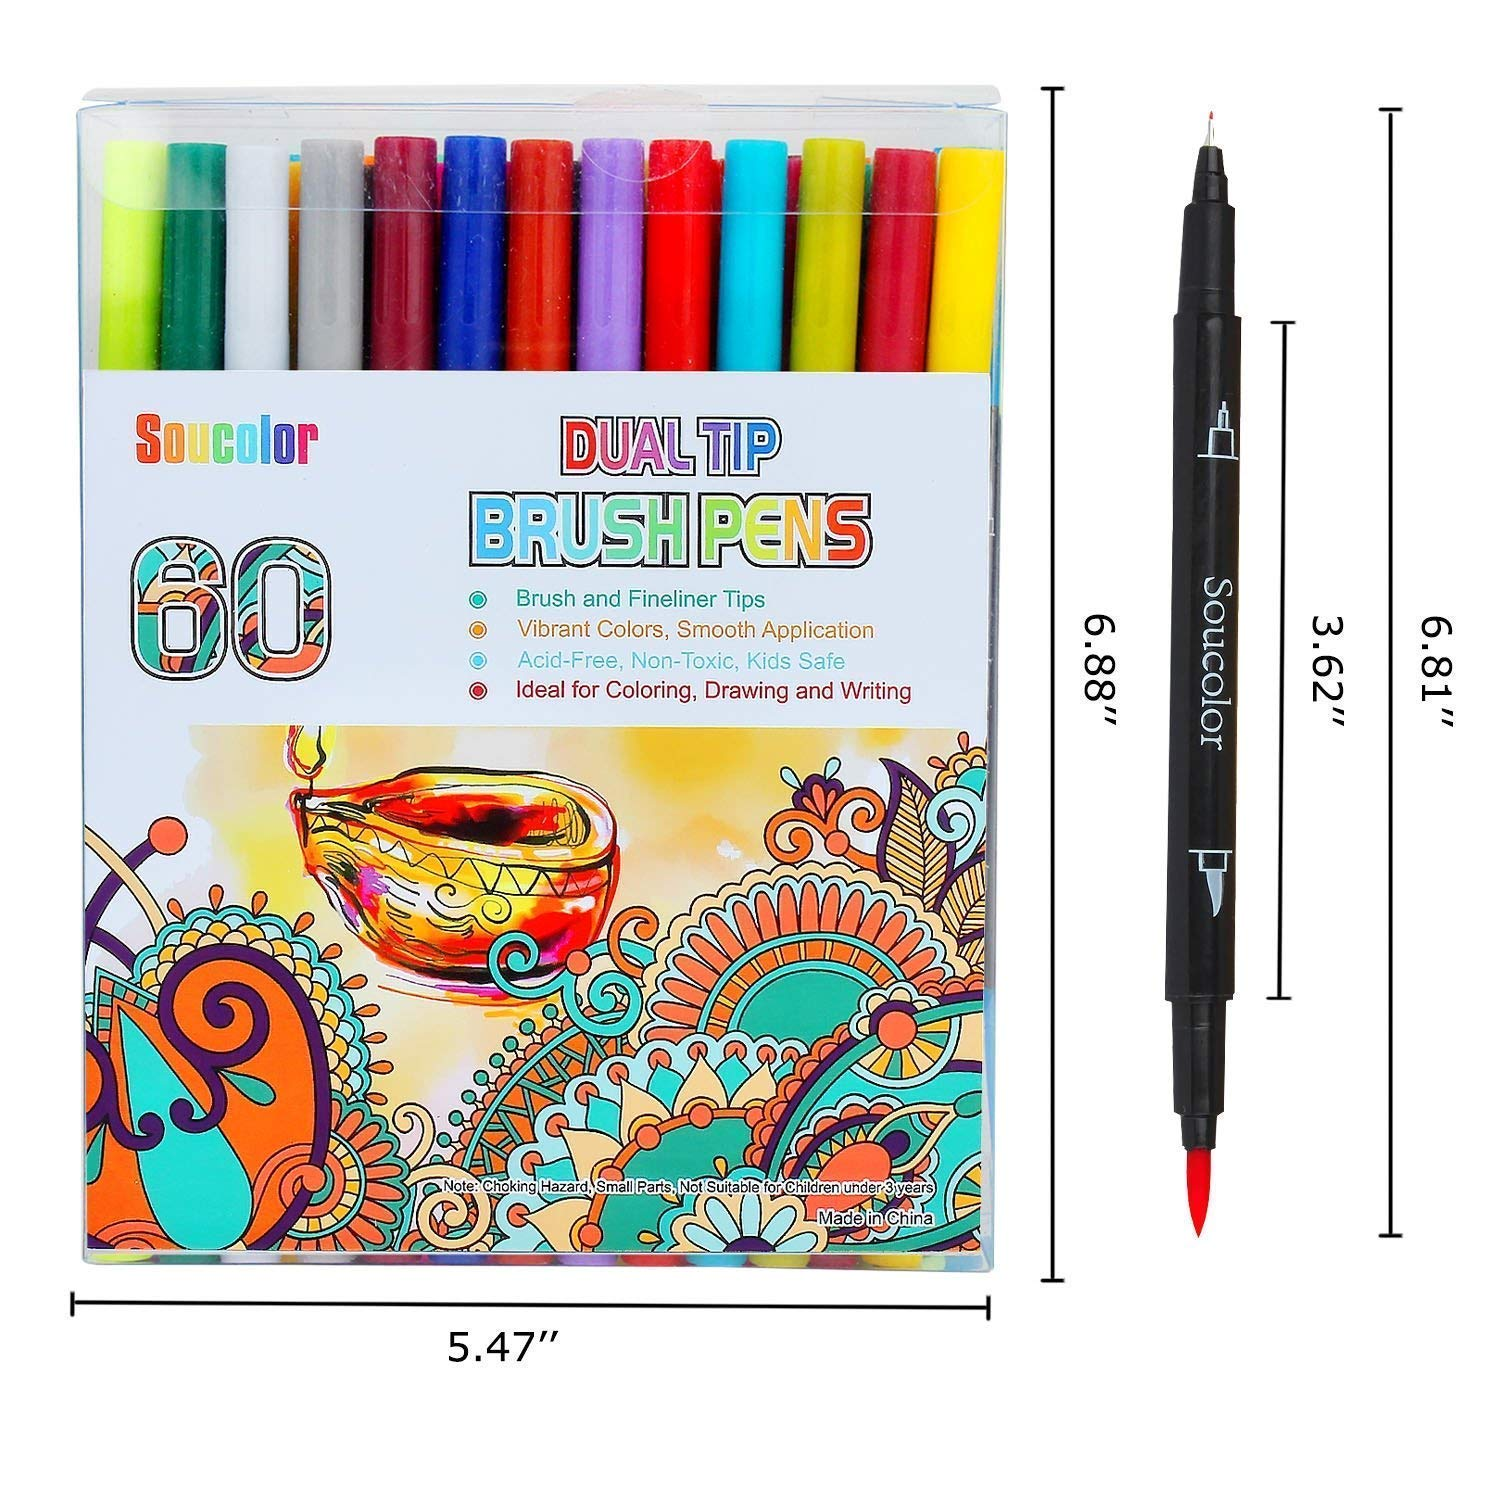 Soucolor 60 Colors Dual Tip Brush, Coloring Pens for Adult Coloring Books, Scrapbooking, Doodling, Drawing, Writing, Sketching and Craft